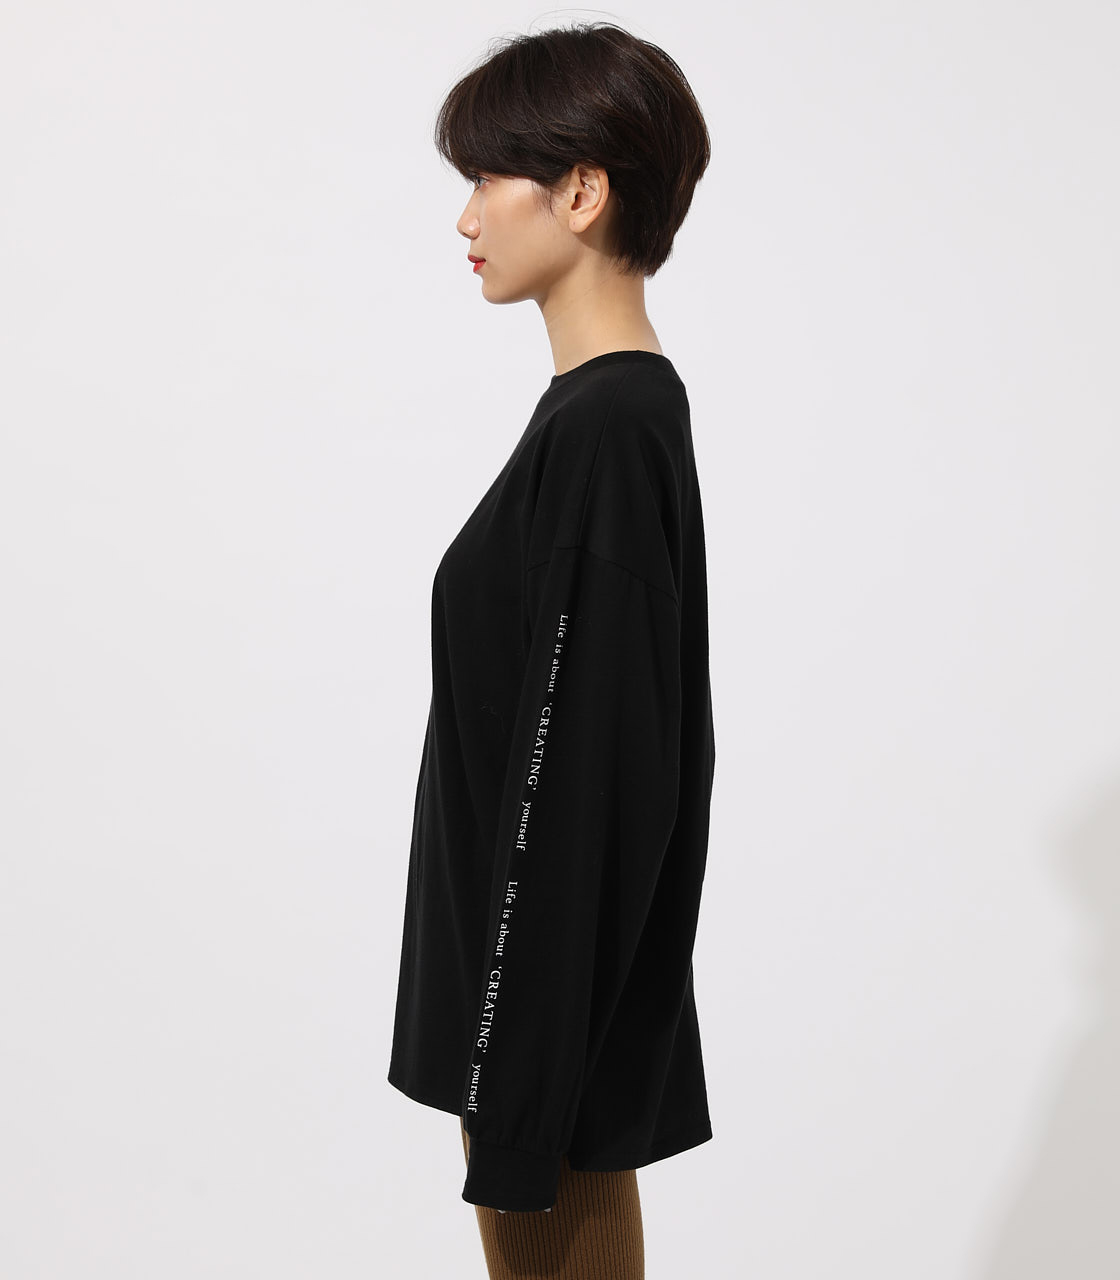 LONG SLEEVE LOOSE TOPS/ロングスリーブルーズトップス 詳細画像 BLK 5